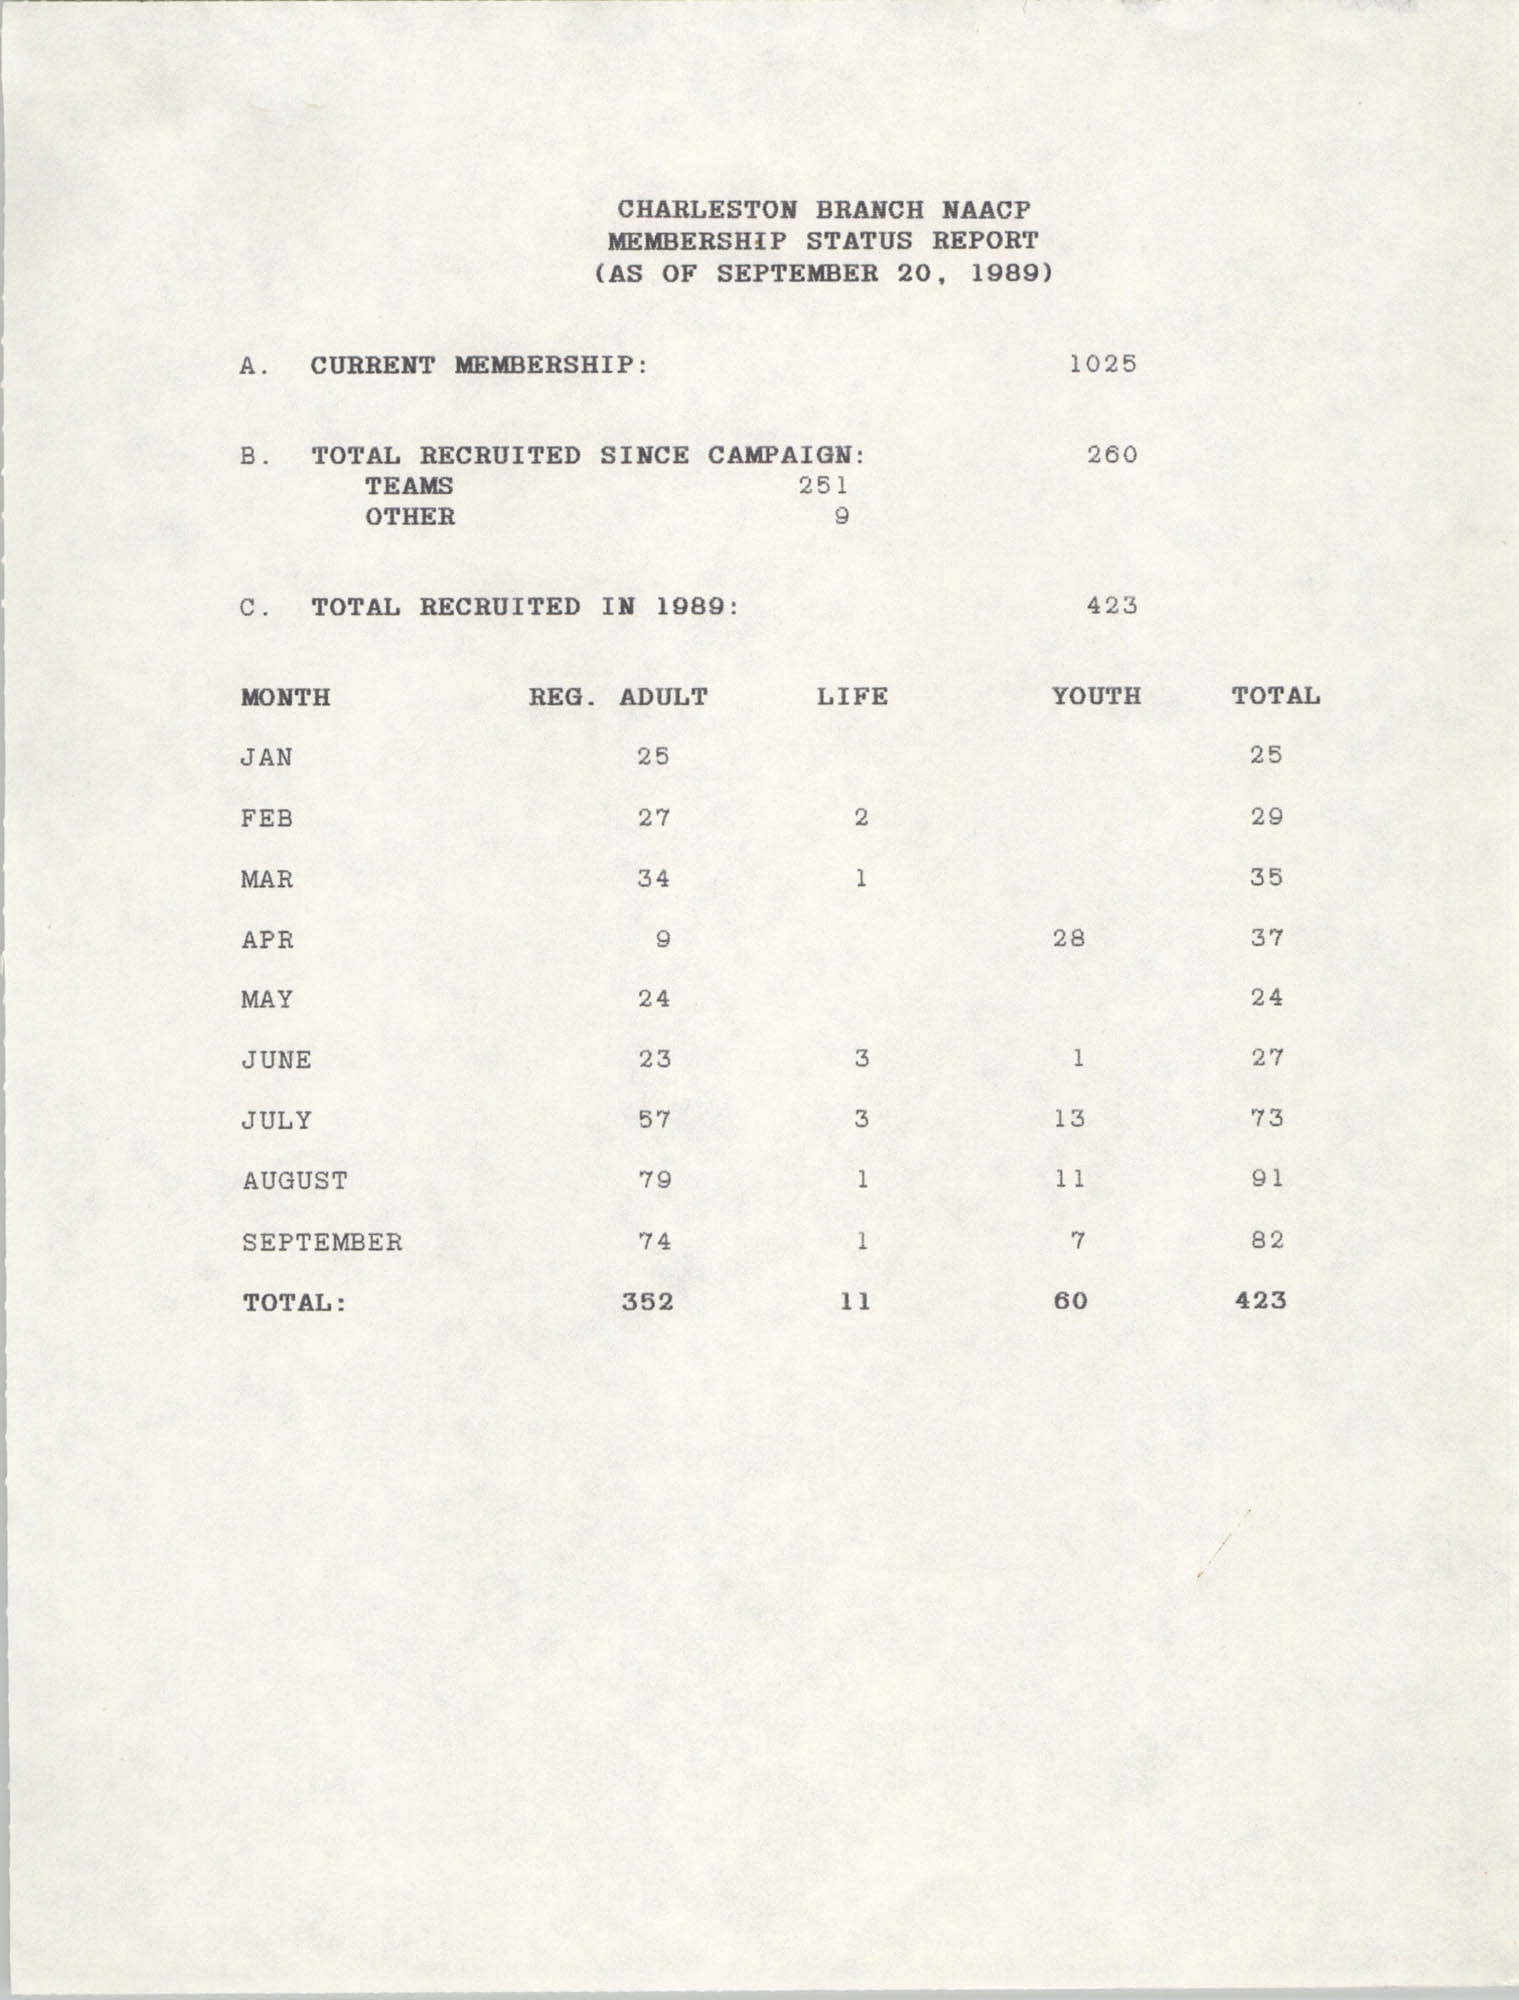 Membership Status Report, National Association for the Advancement of Colored People, September 20, 1989